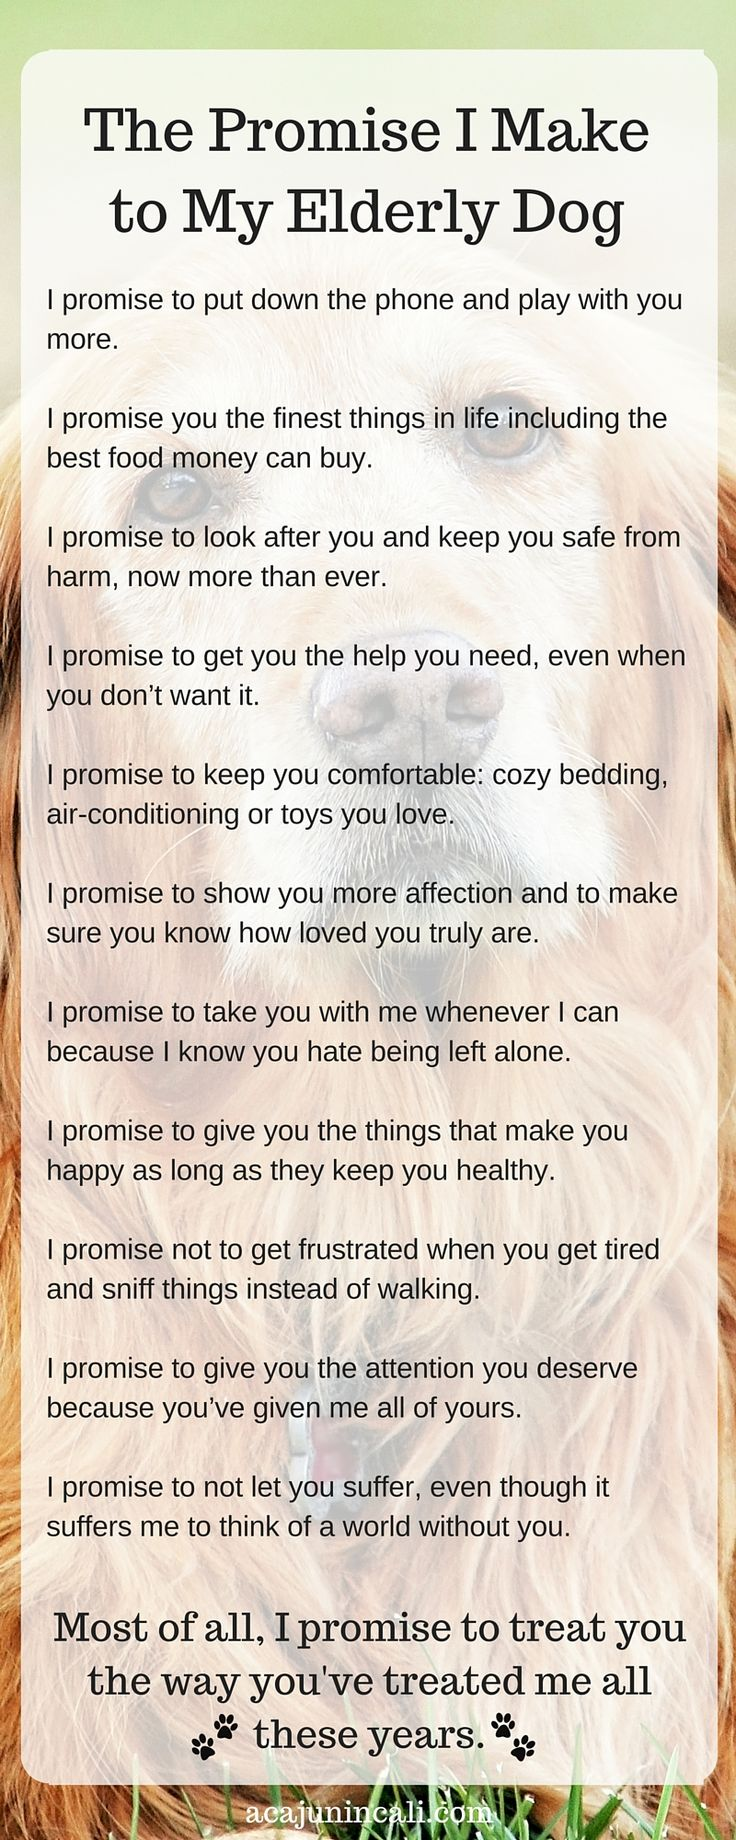 Having an senior pet changes many things about our lifestyle. But no matter what, they are part of our family. Read the promise I make to my elderly dog. #seniorpet #petcare via @acajunincali